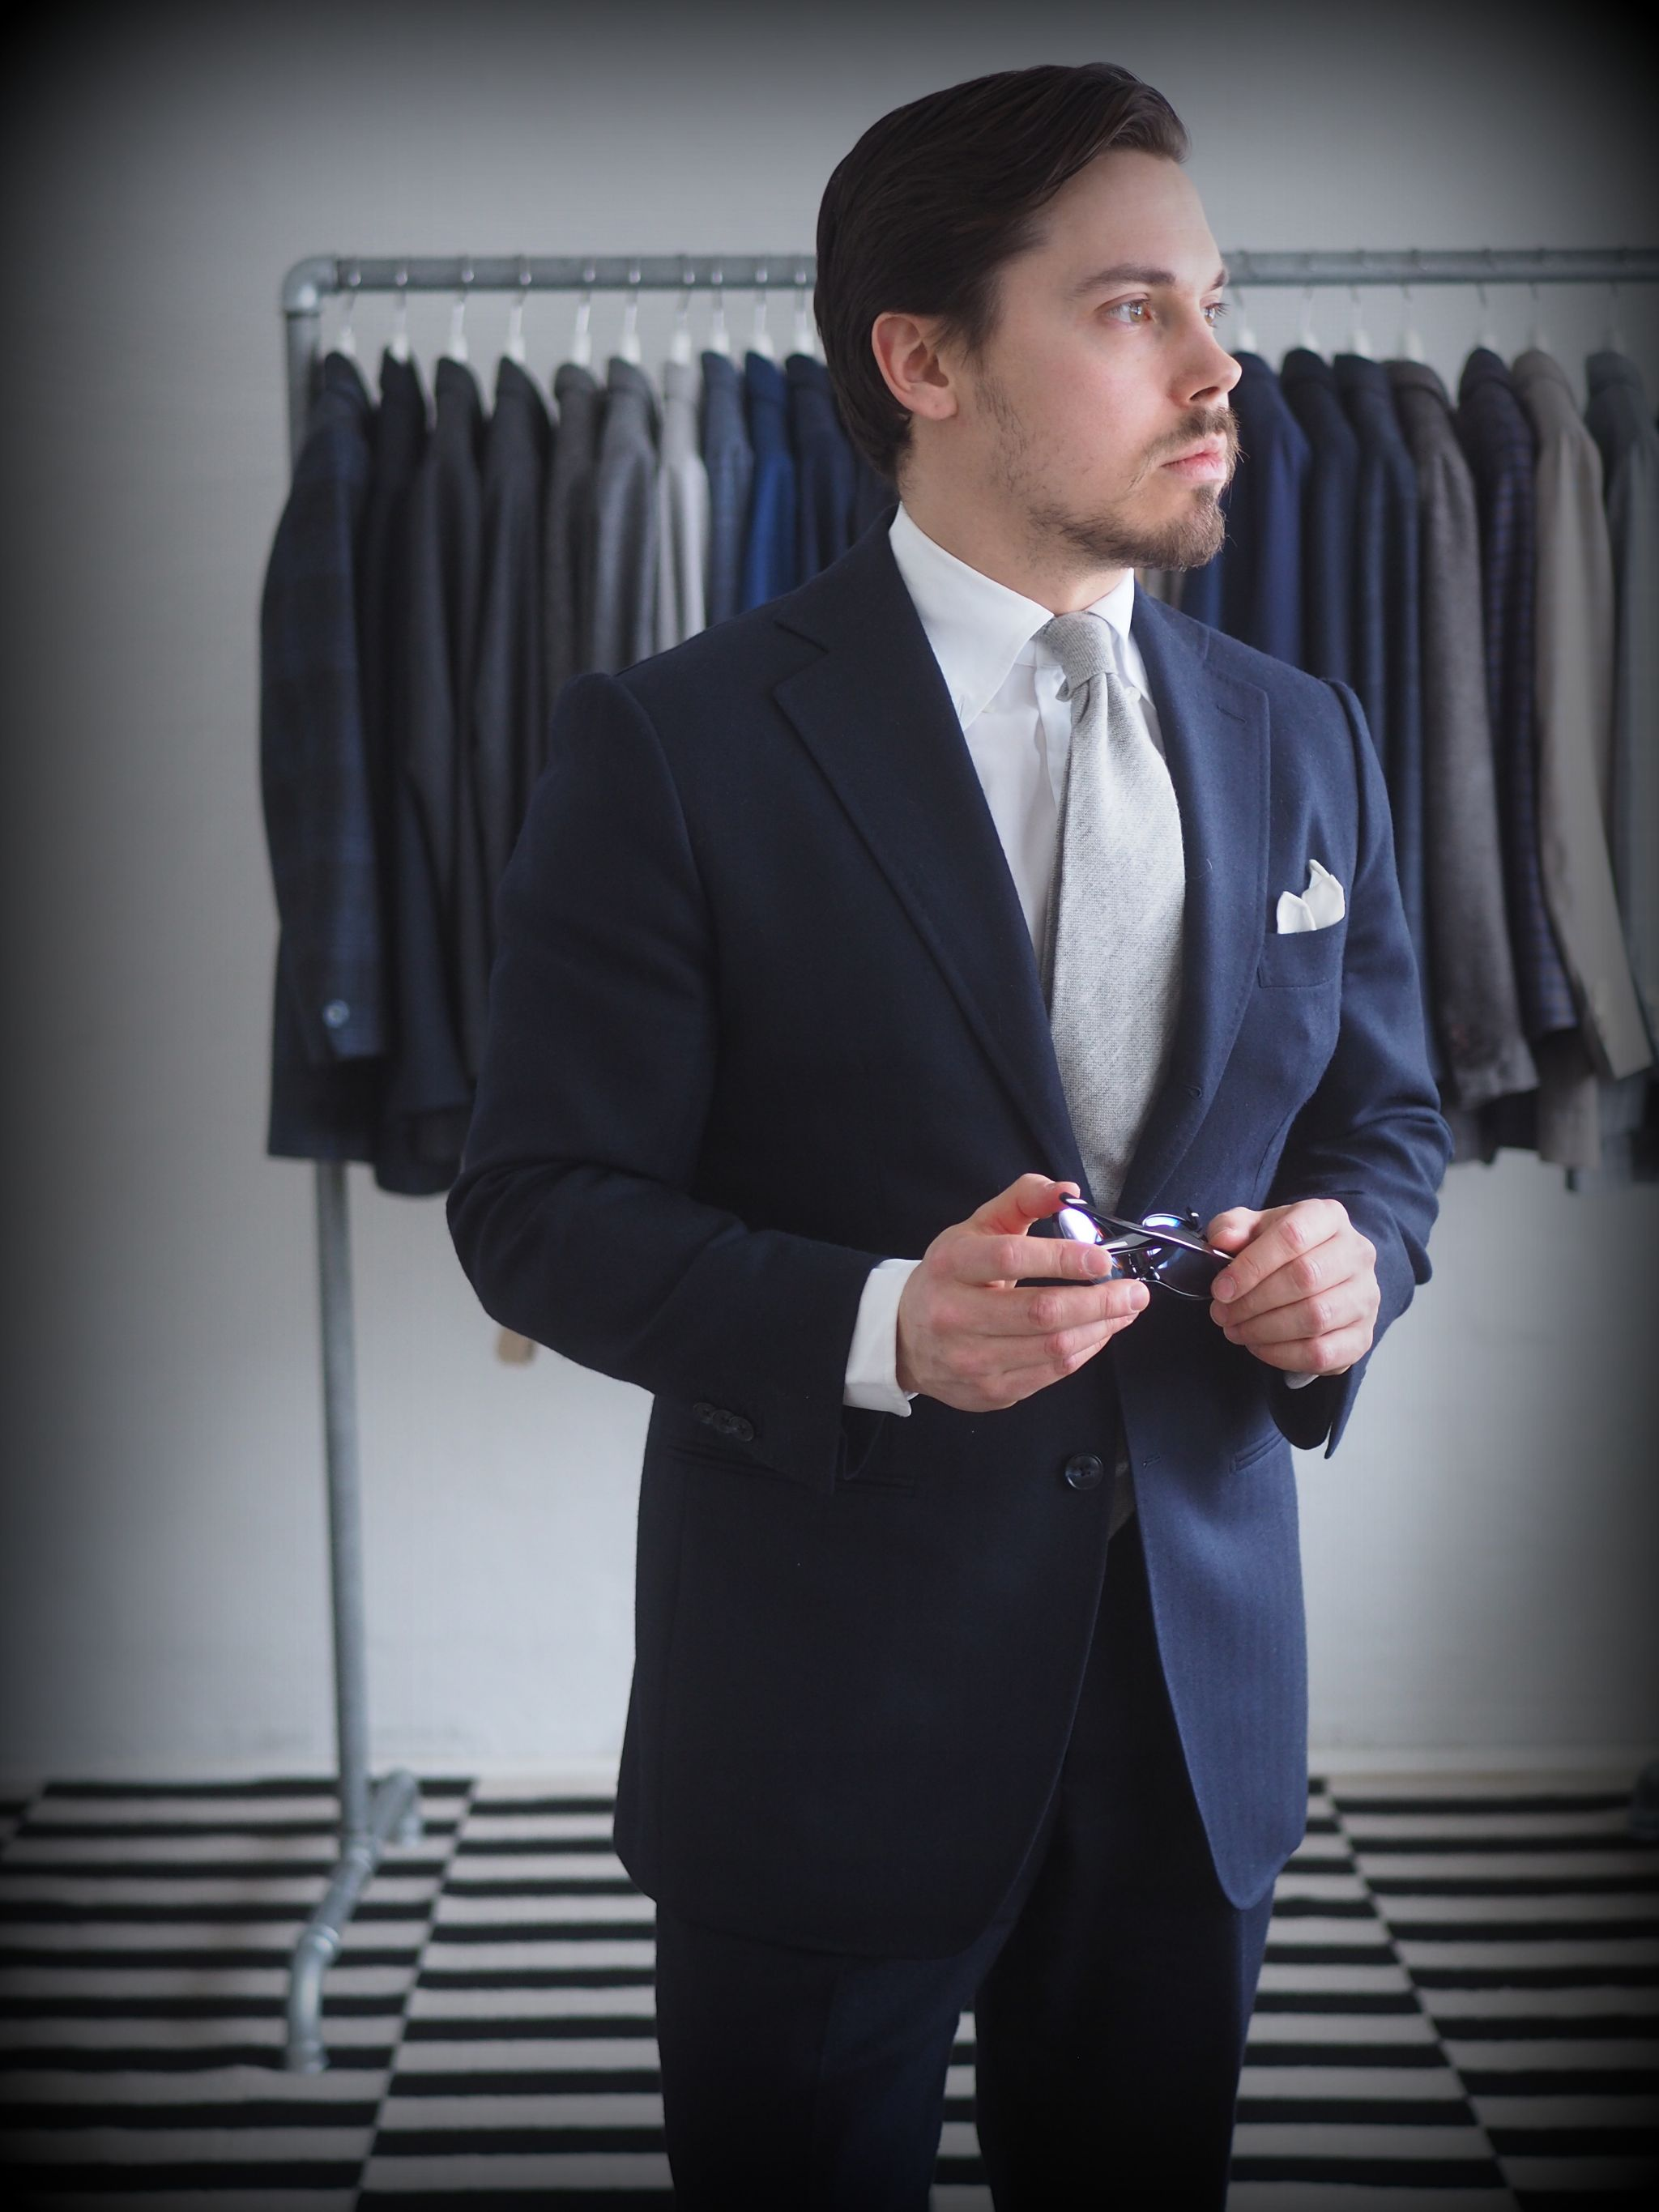 Classic combinations for men - navy blue suit with gray cashmere tie